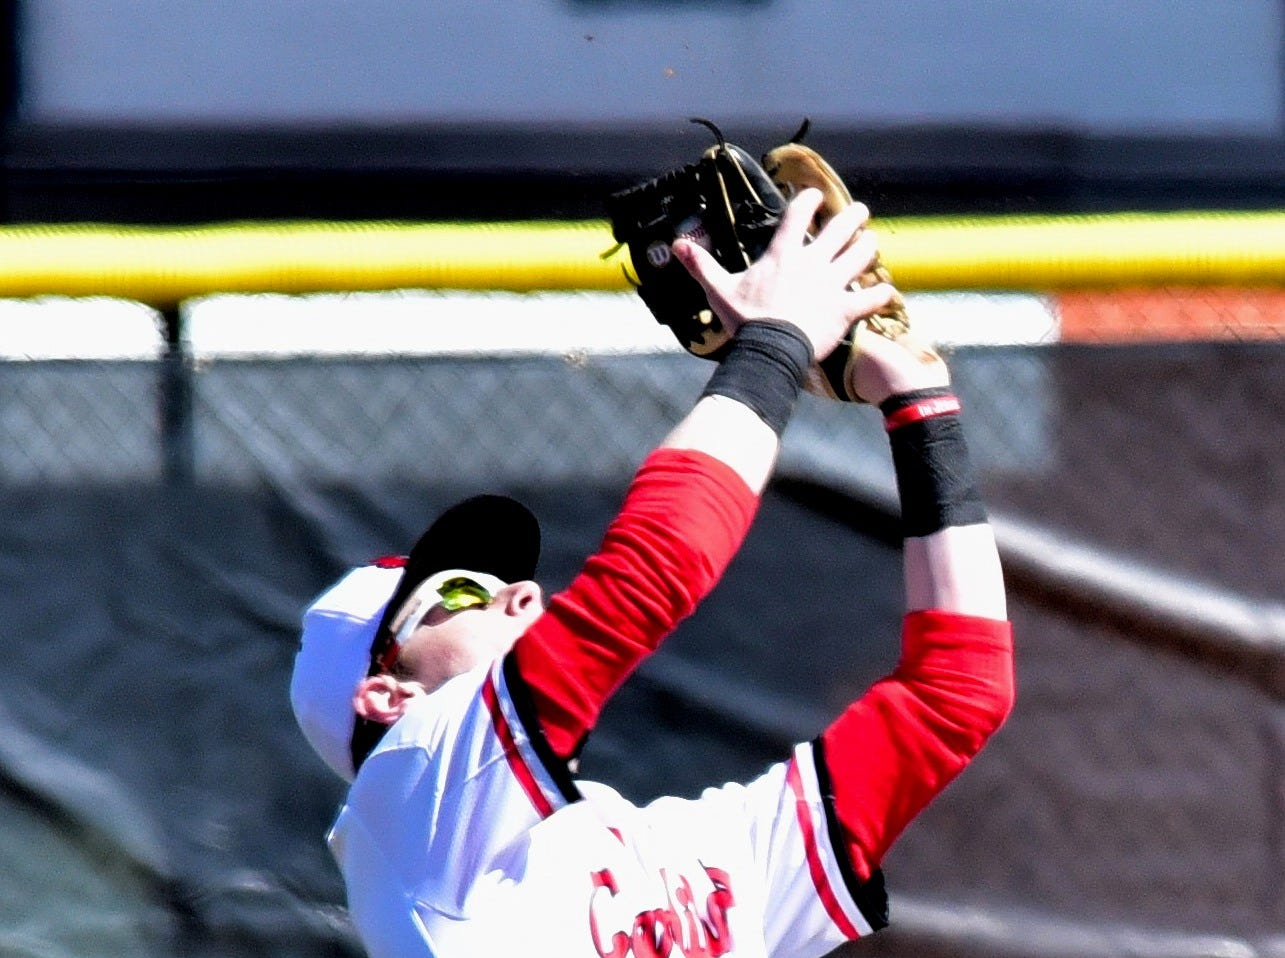 Colerain's Stephen Stigler bags a pop fly for an out for the Cardinals at Colerain High School, March 23, 2019.